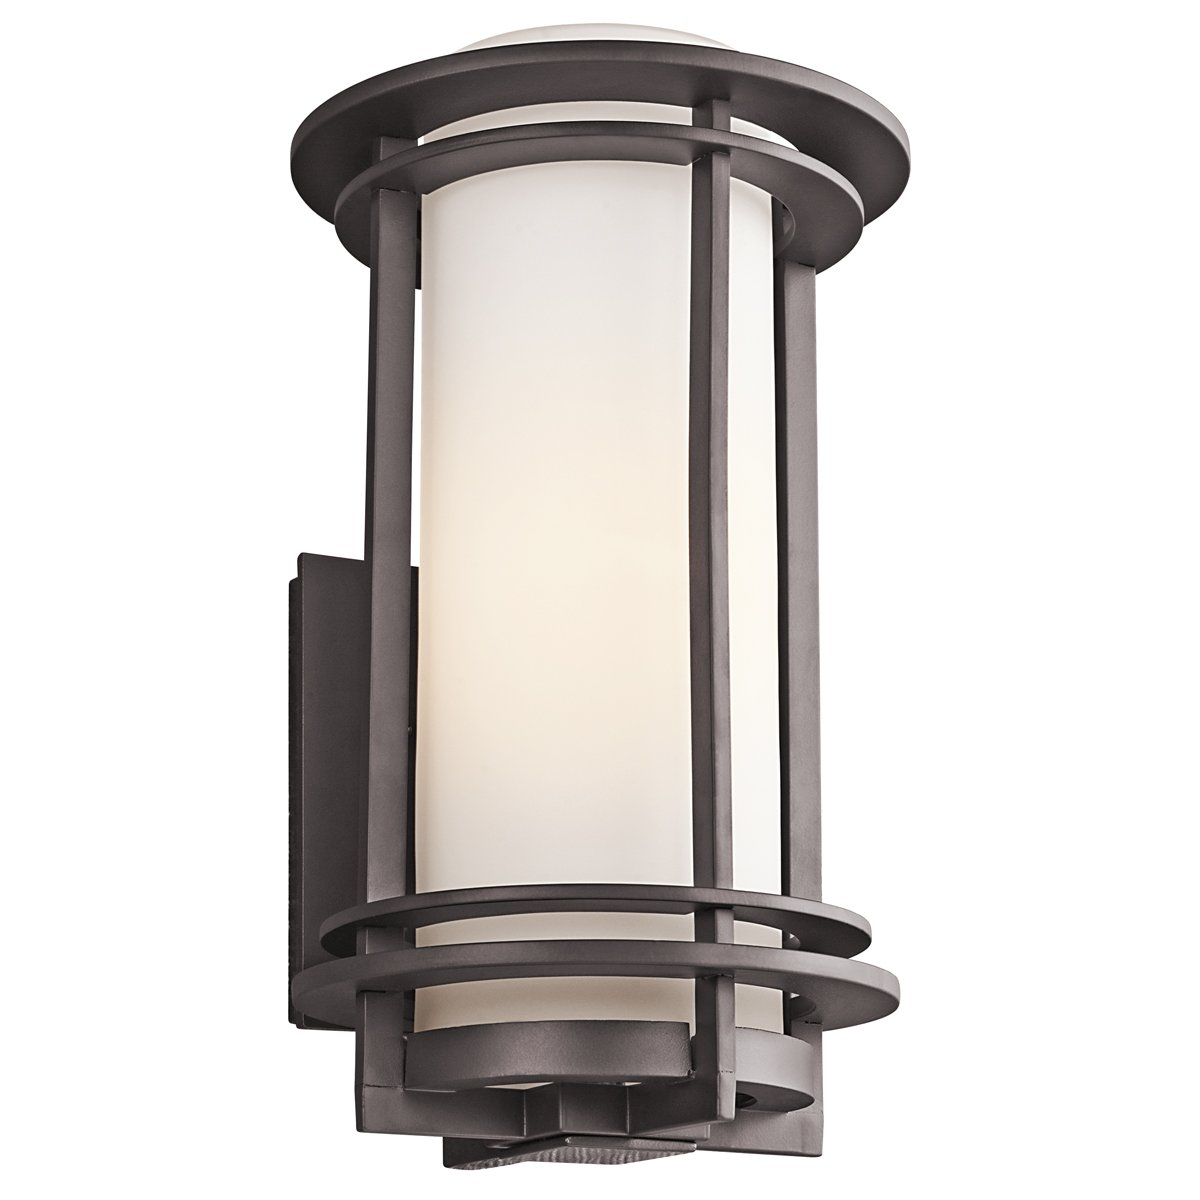 Kichler 49346az pacific edge outdoor wall 1 light architectural kichler 49346az pacific edge outdoor wall 1 light architectural bronze wall sconces amazon aloadofball Image collections